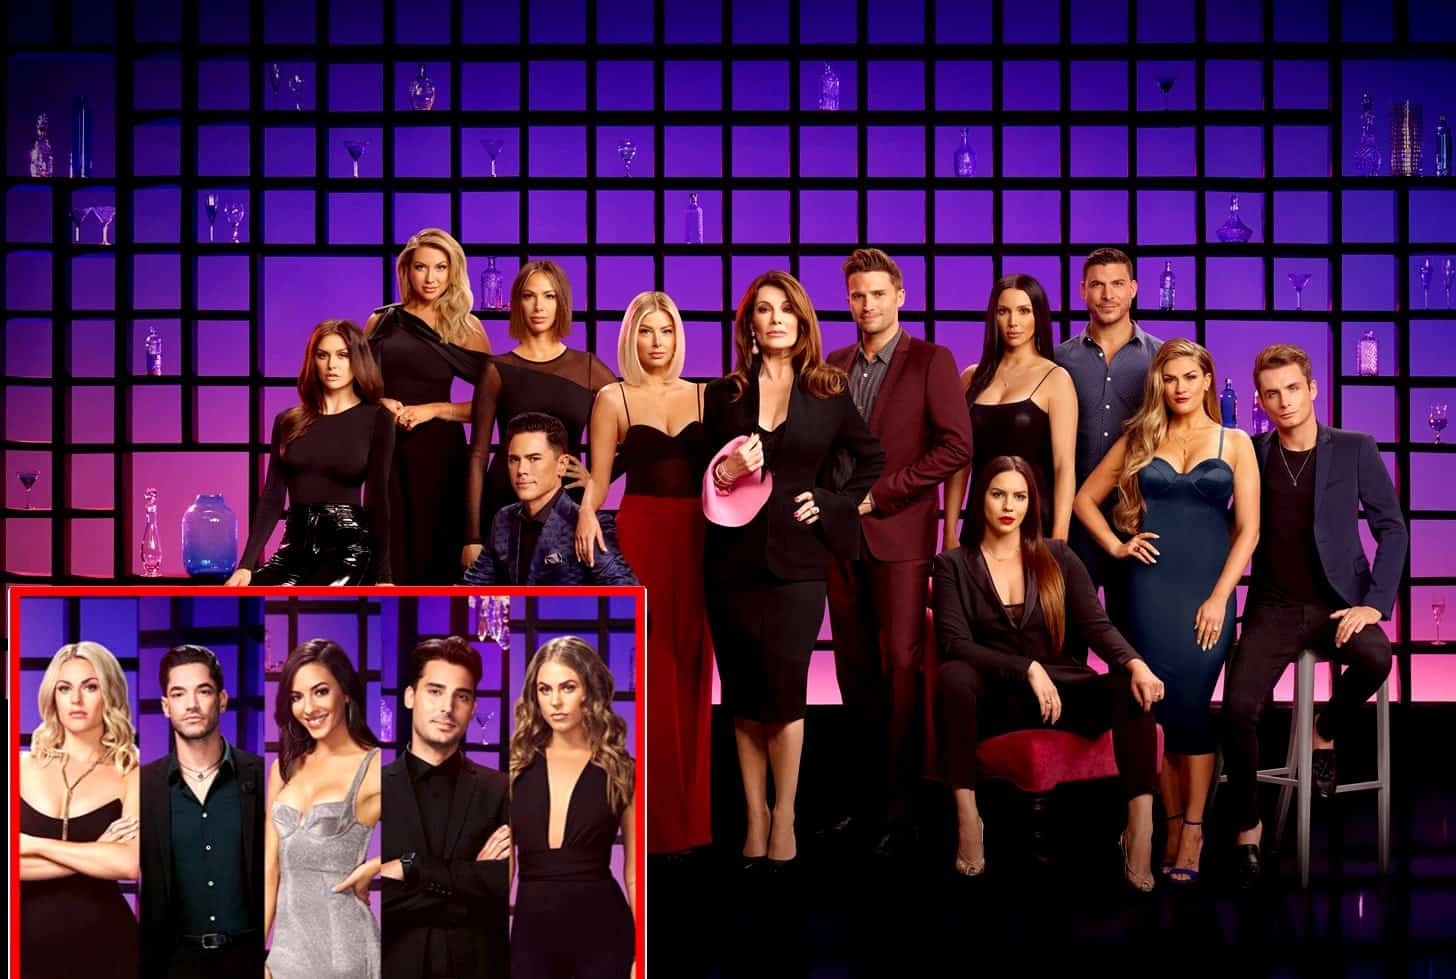 VIDEO: Watch Vanderpump Rules Season 8 Trailer! Stassi and Kristen Endure a Falling Out as Jax Feuds With Tom Sandoval Plus Meet 5 New Cast Members!